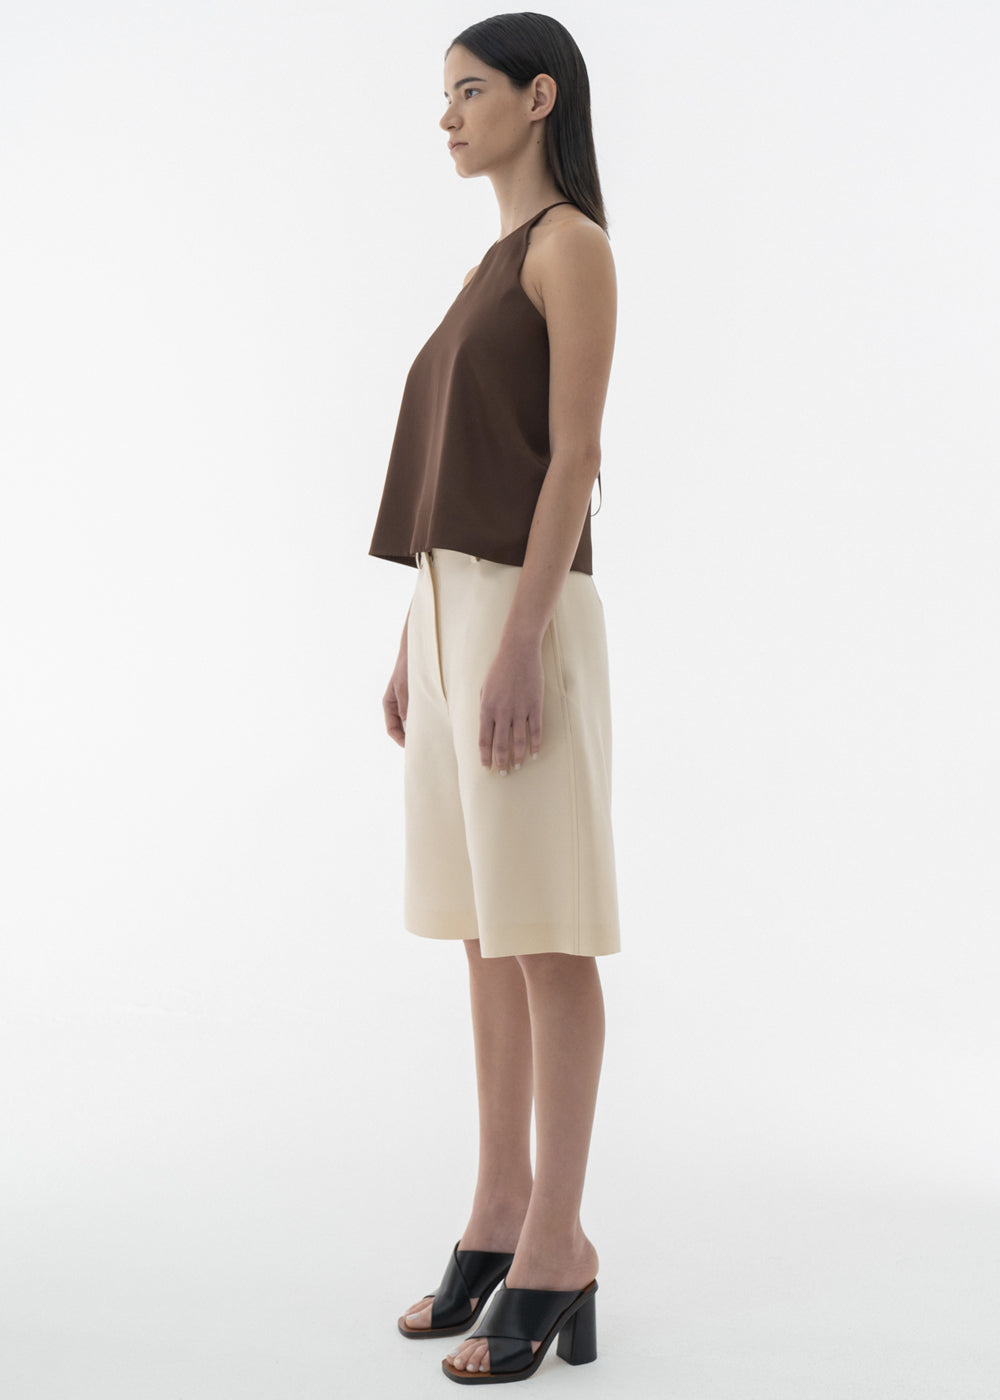 BACK OPEN SATIN SLIP TOP BROWN